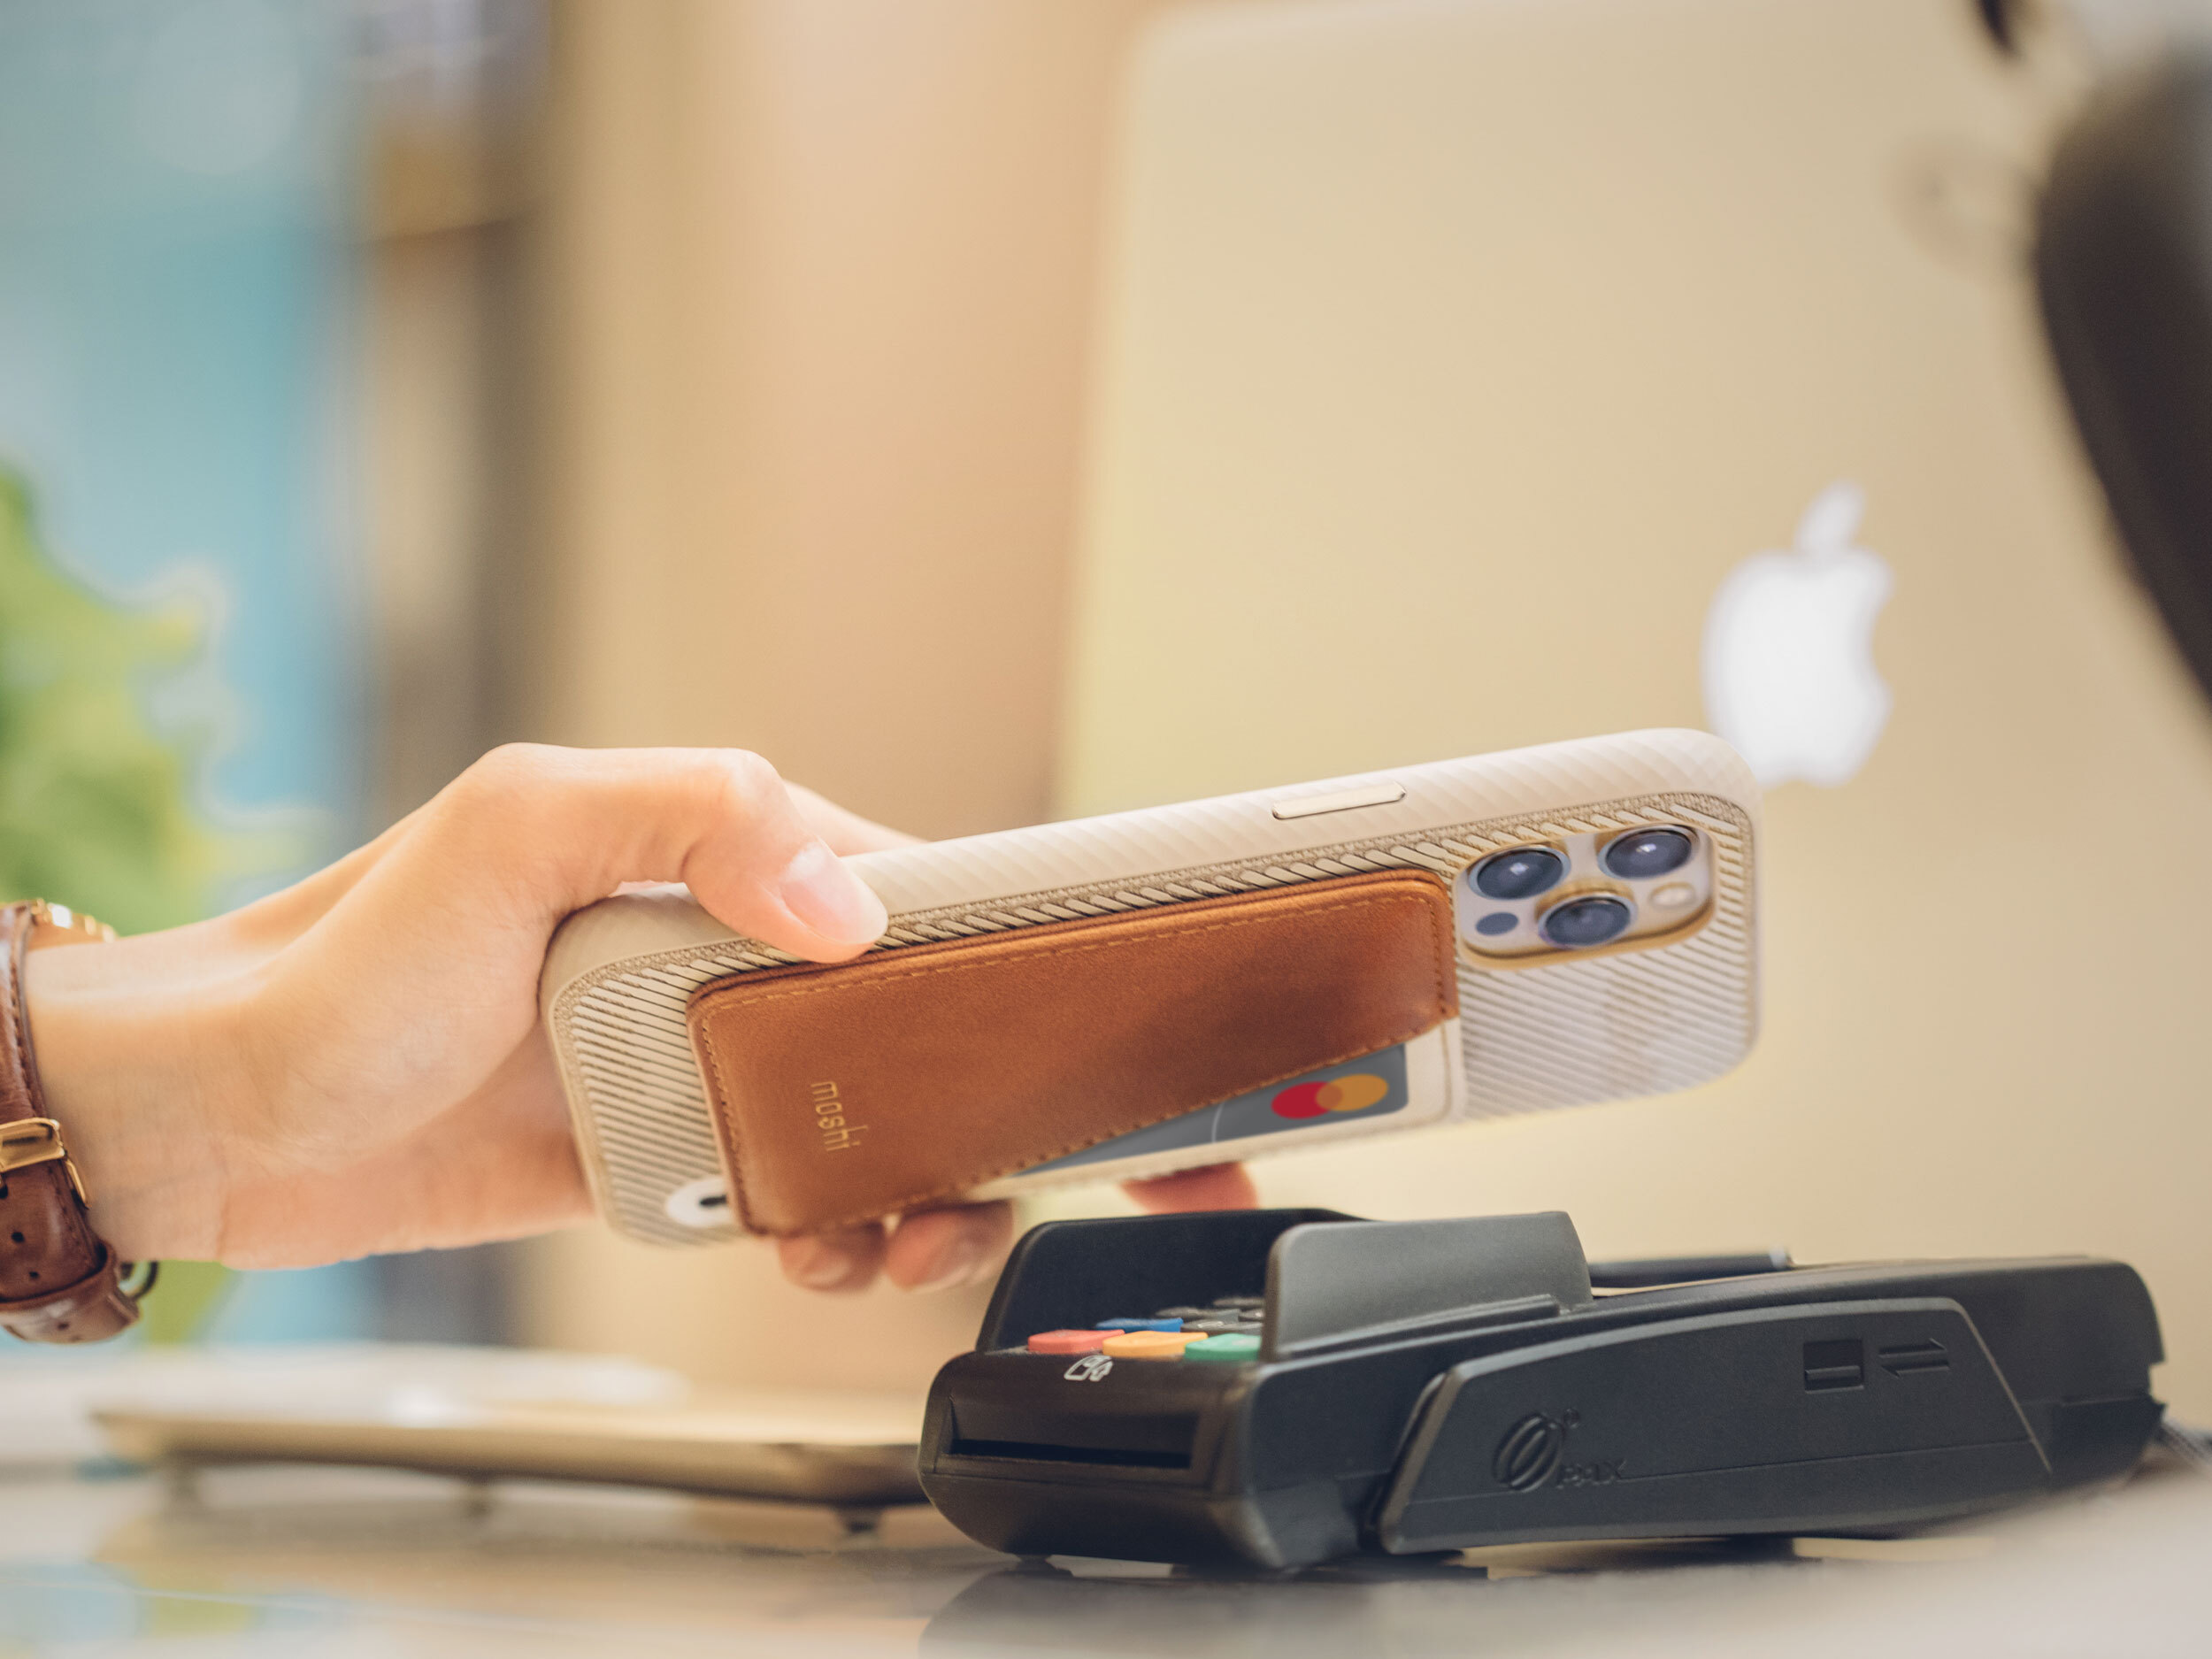 Scanning a card in the SnapTo Slim Wallet over a payment terminal in a store